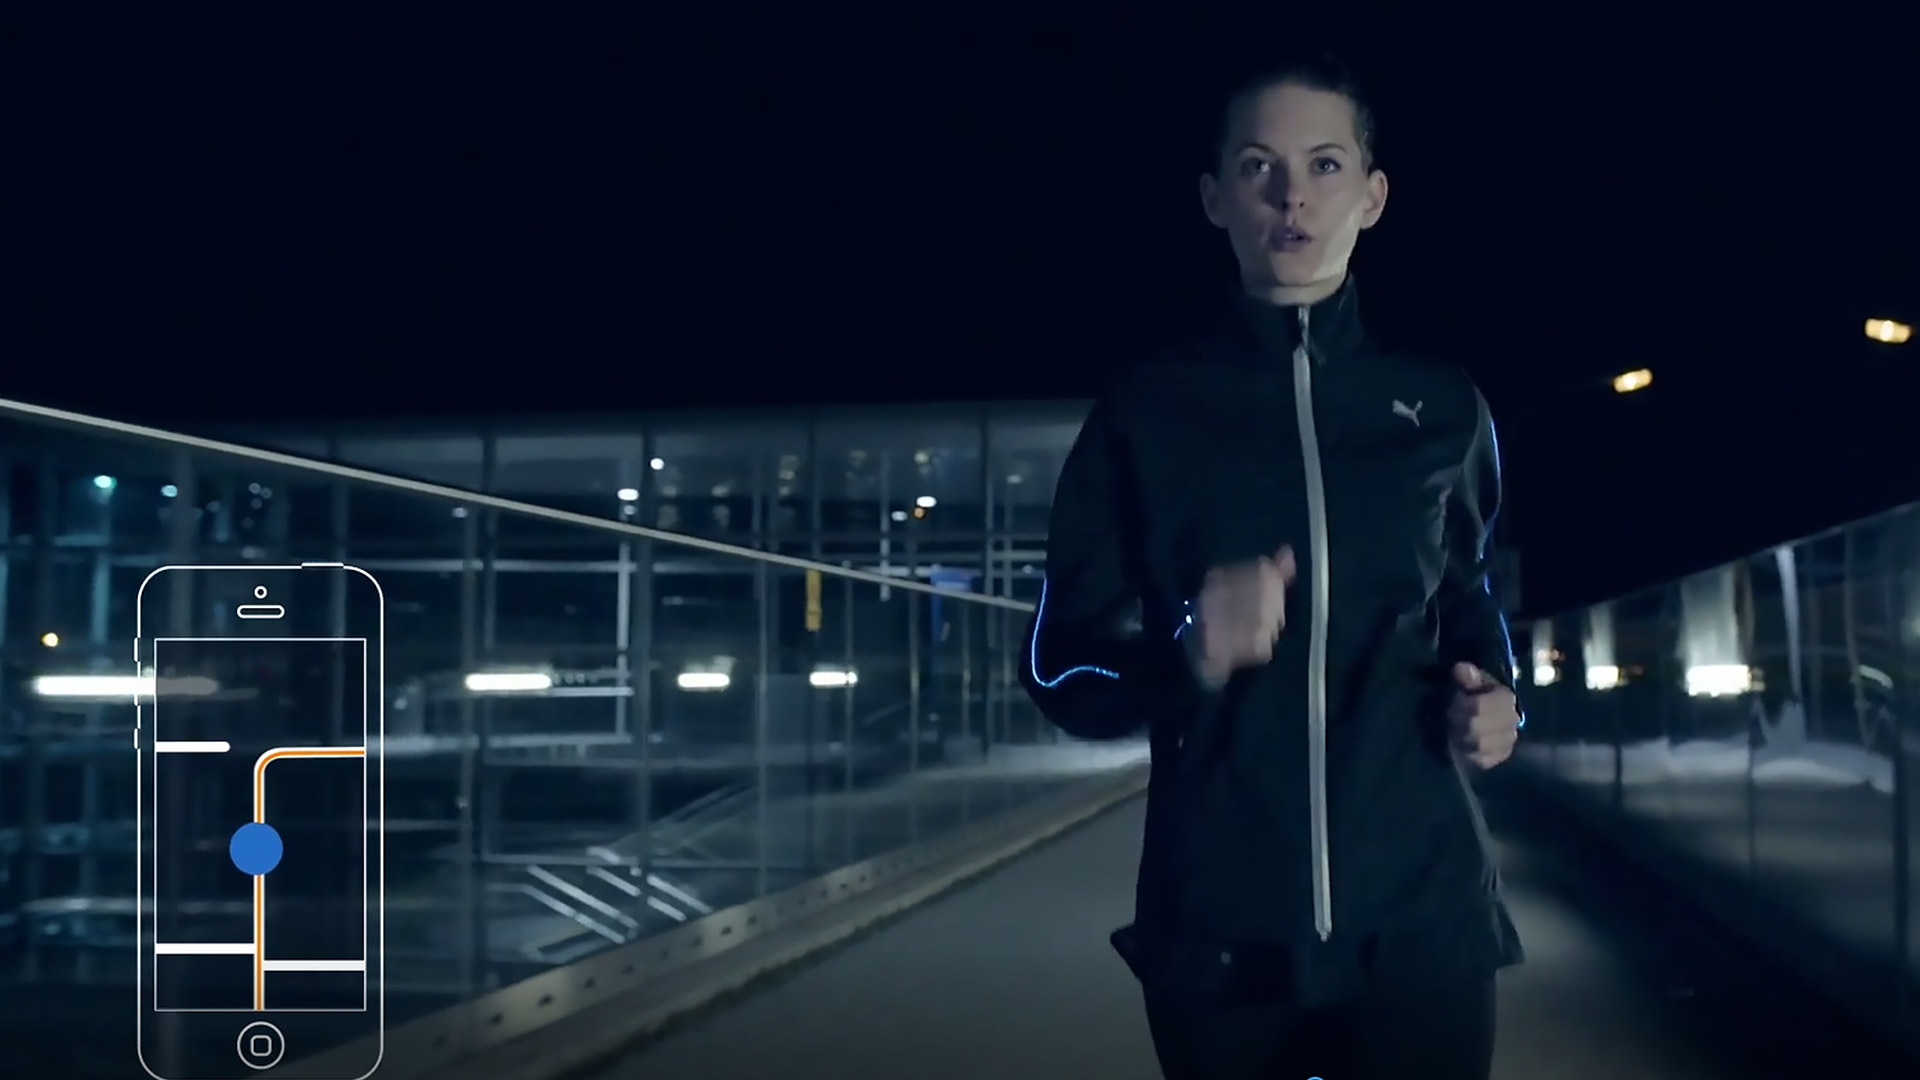 Athlete wearing Nightcat Powered Jacket